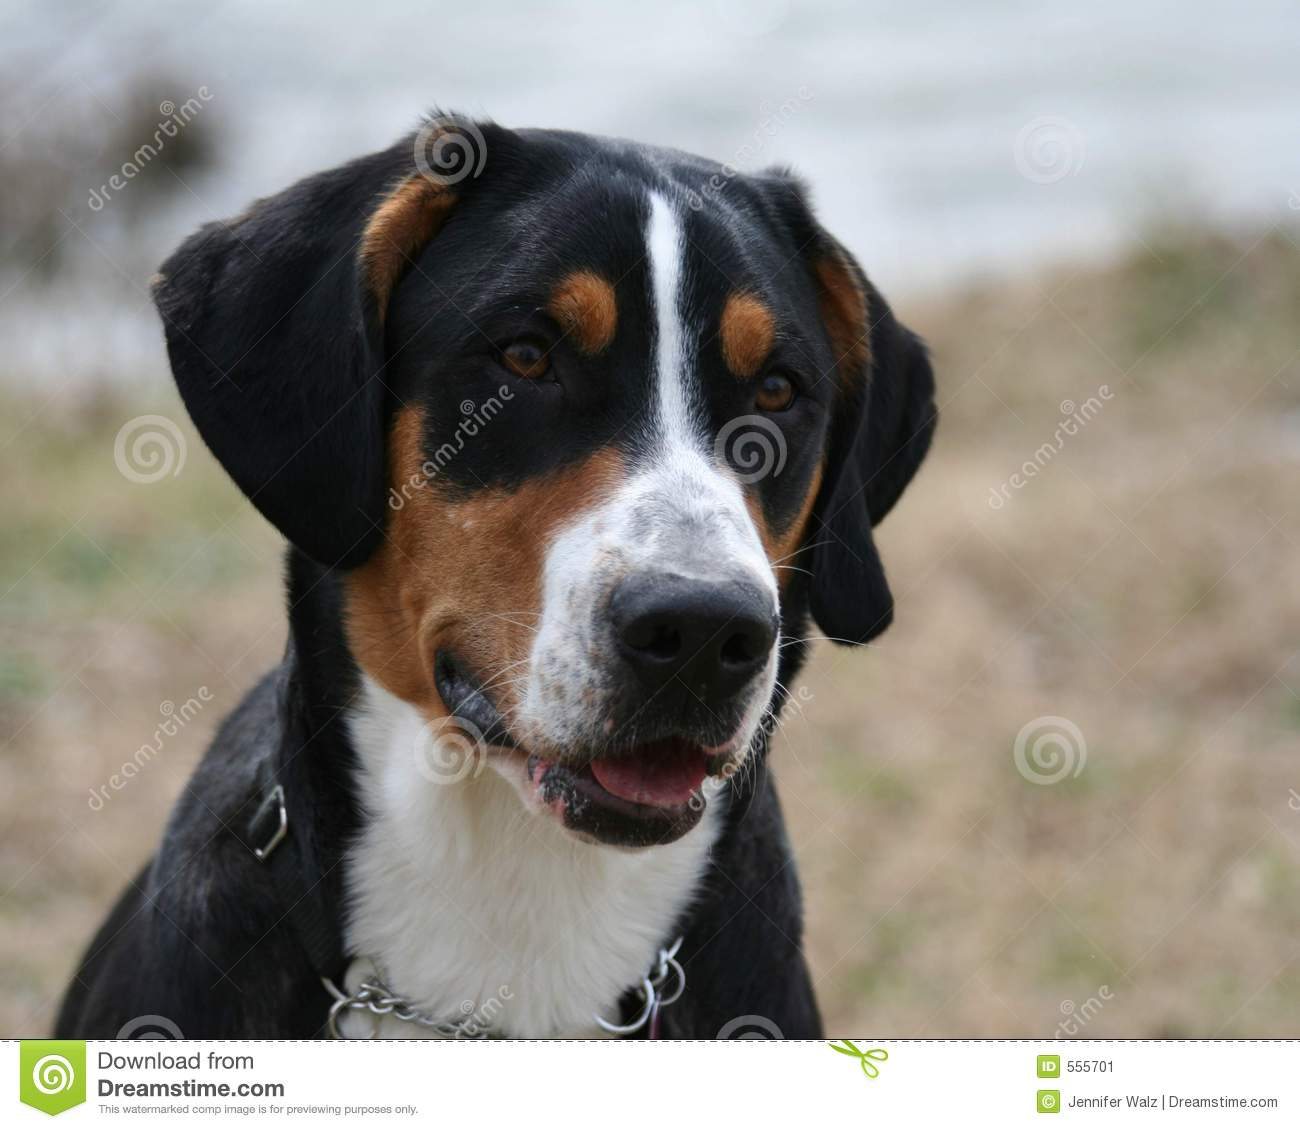 detailed dog breeding business plan template example